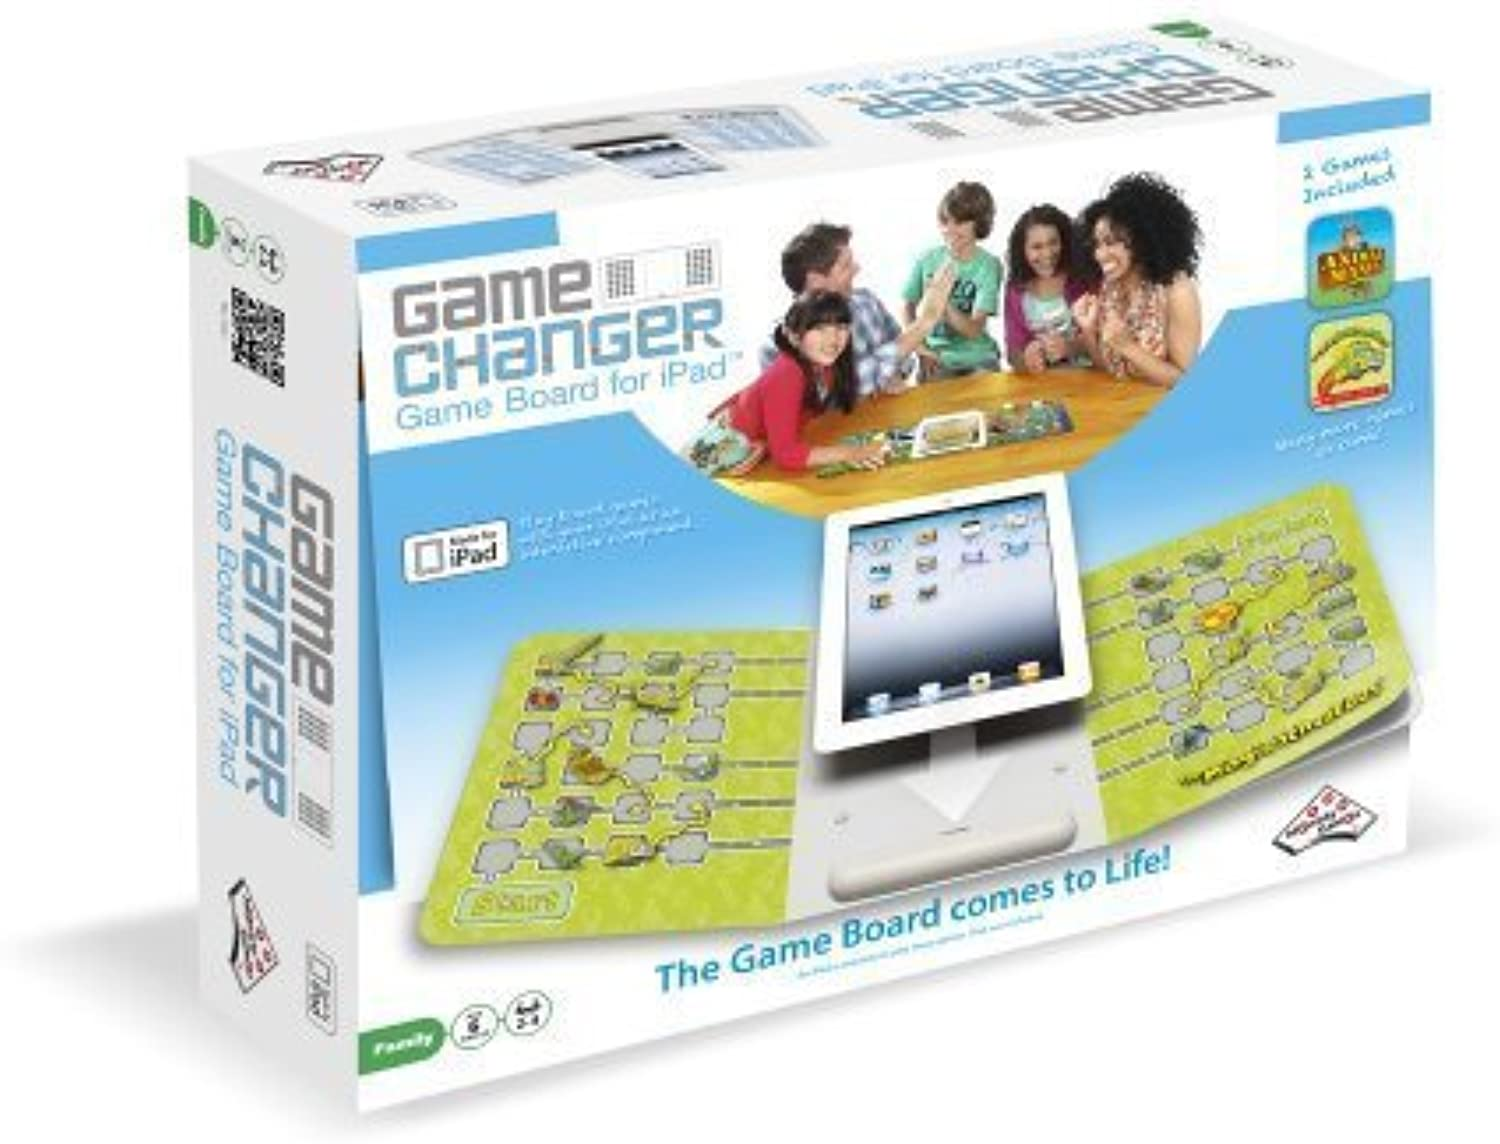 The GameChanger by Identity Games International